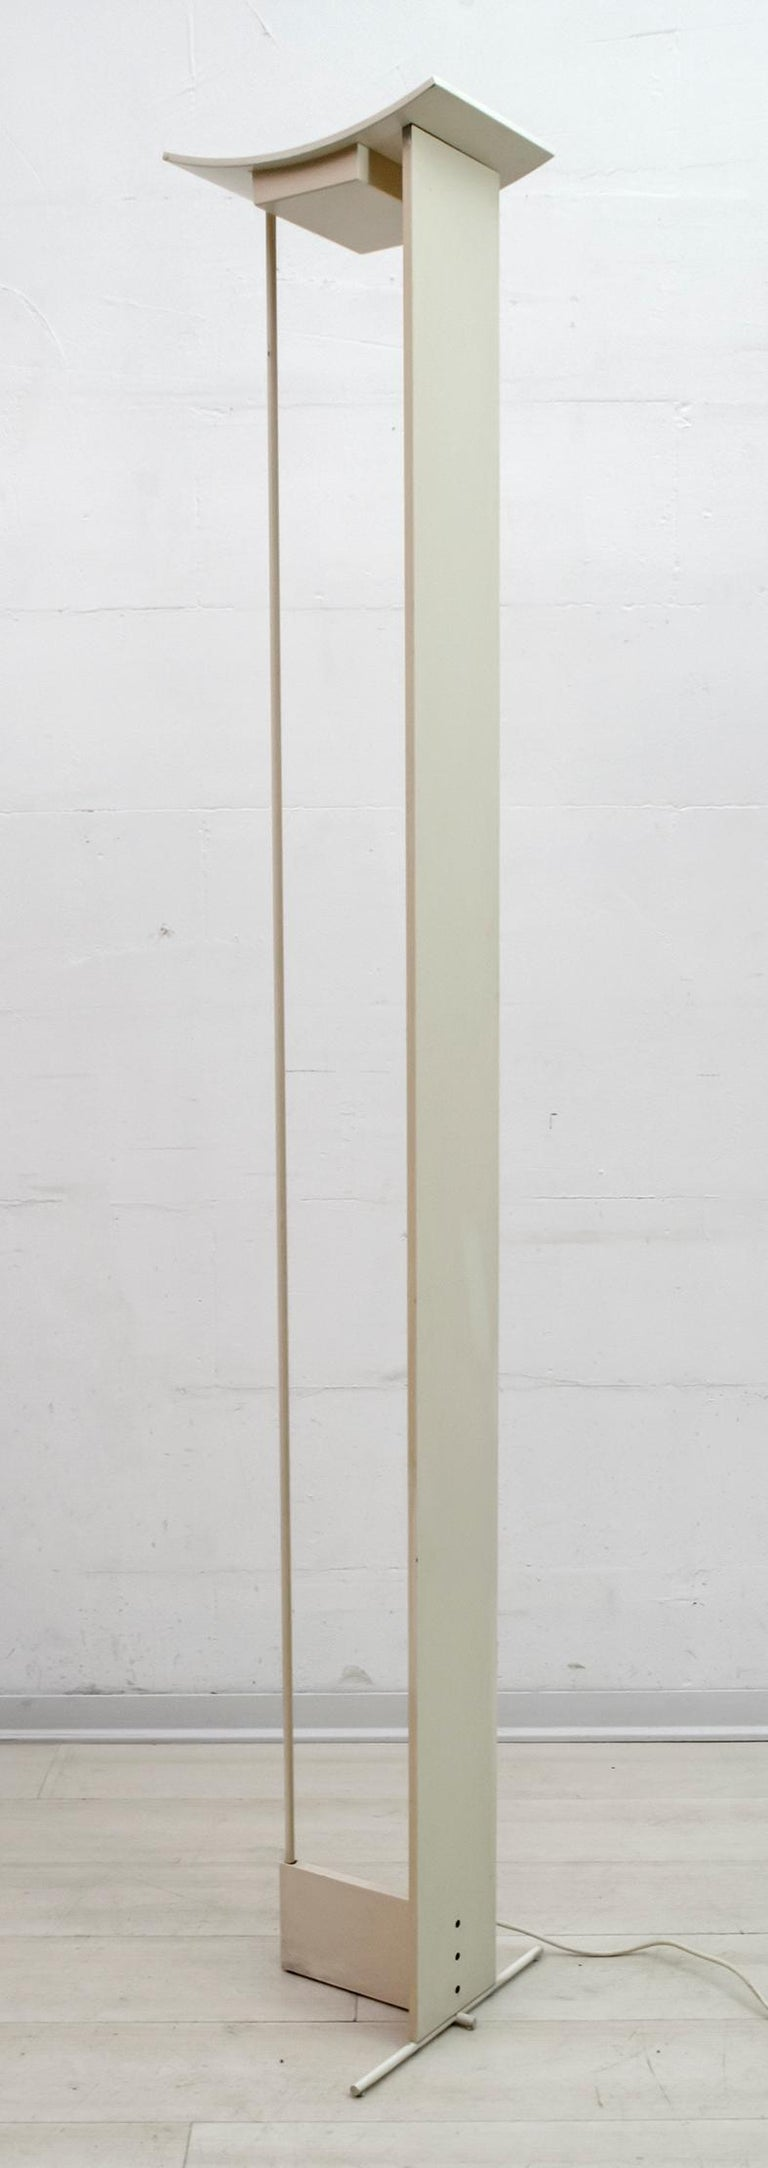 Floor lamp in wood and ivory lacquered aluminum, produced by Microdata Milano, a dimmer regulates the intensity of the halogen bulb.